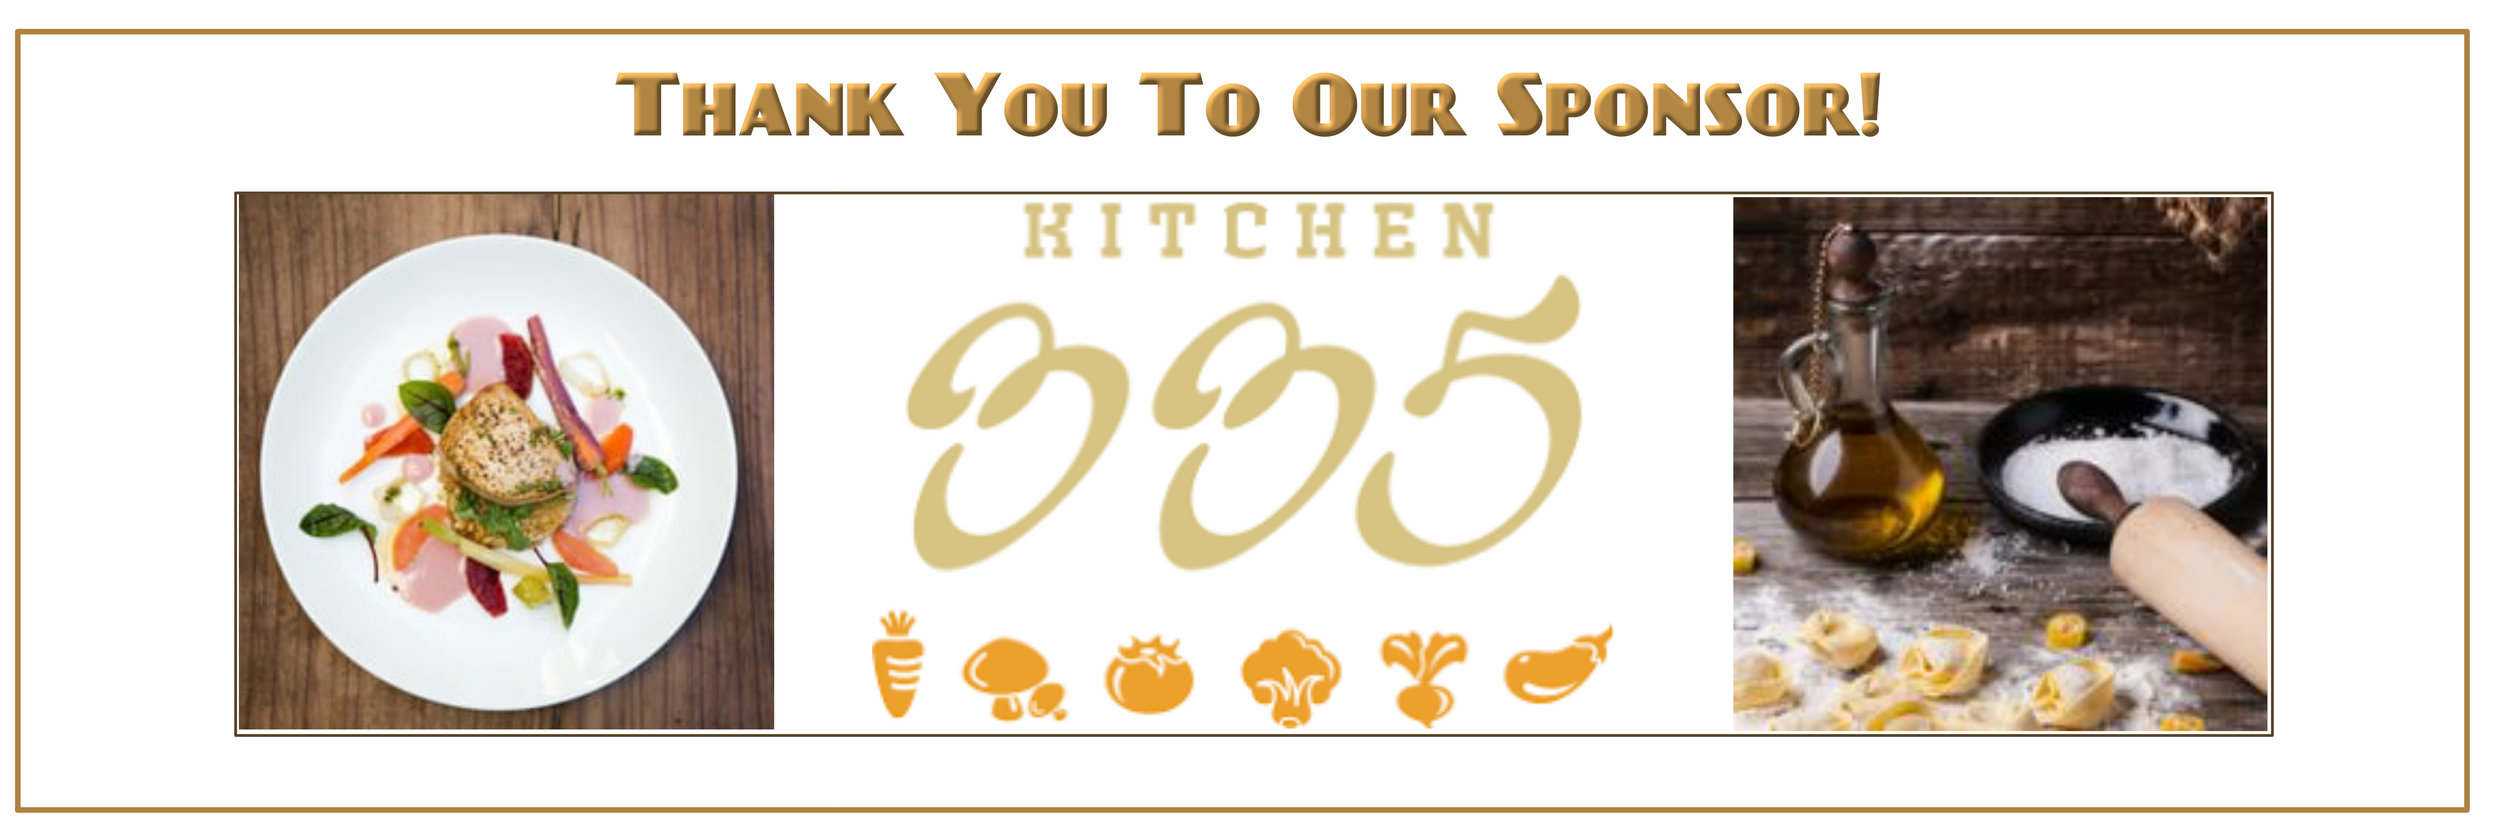 Banner - Kitchen 335.jpg